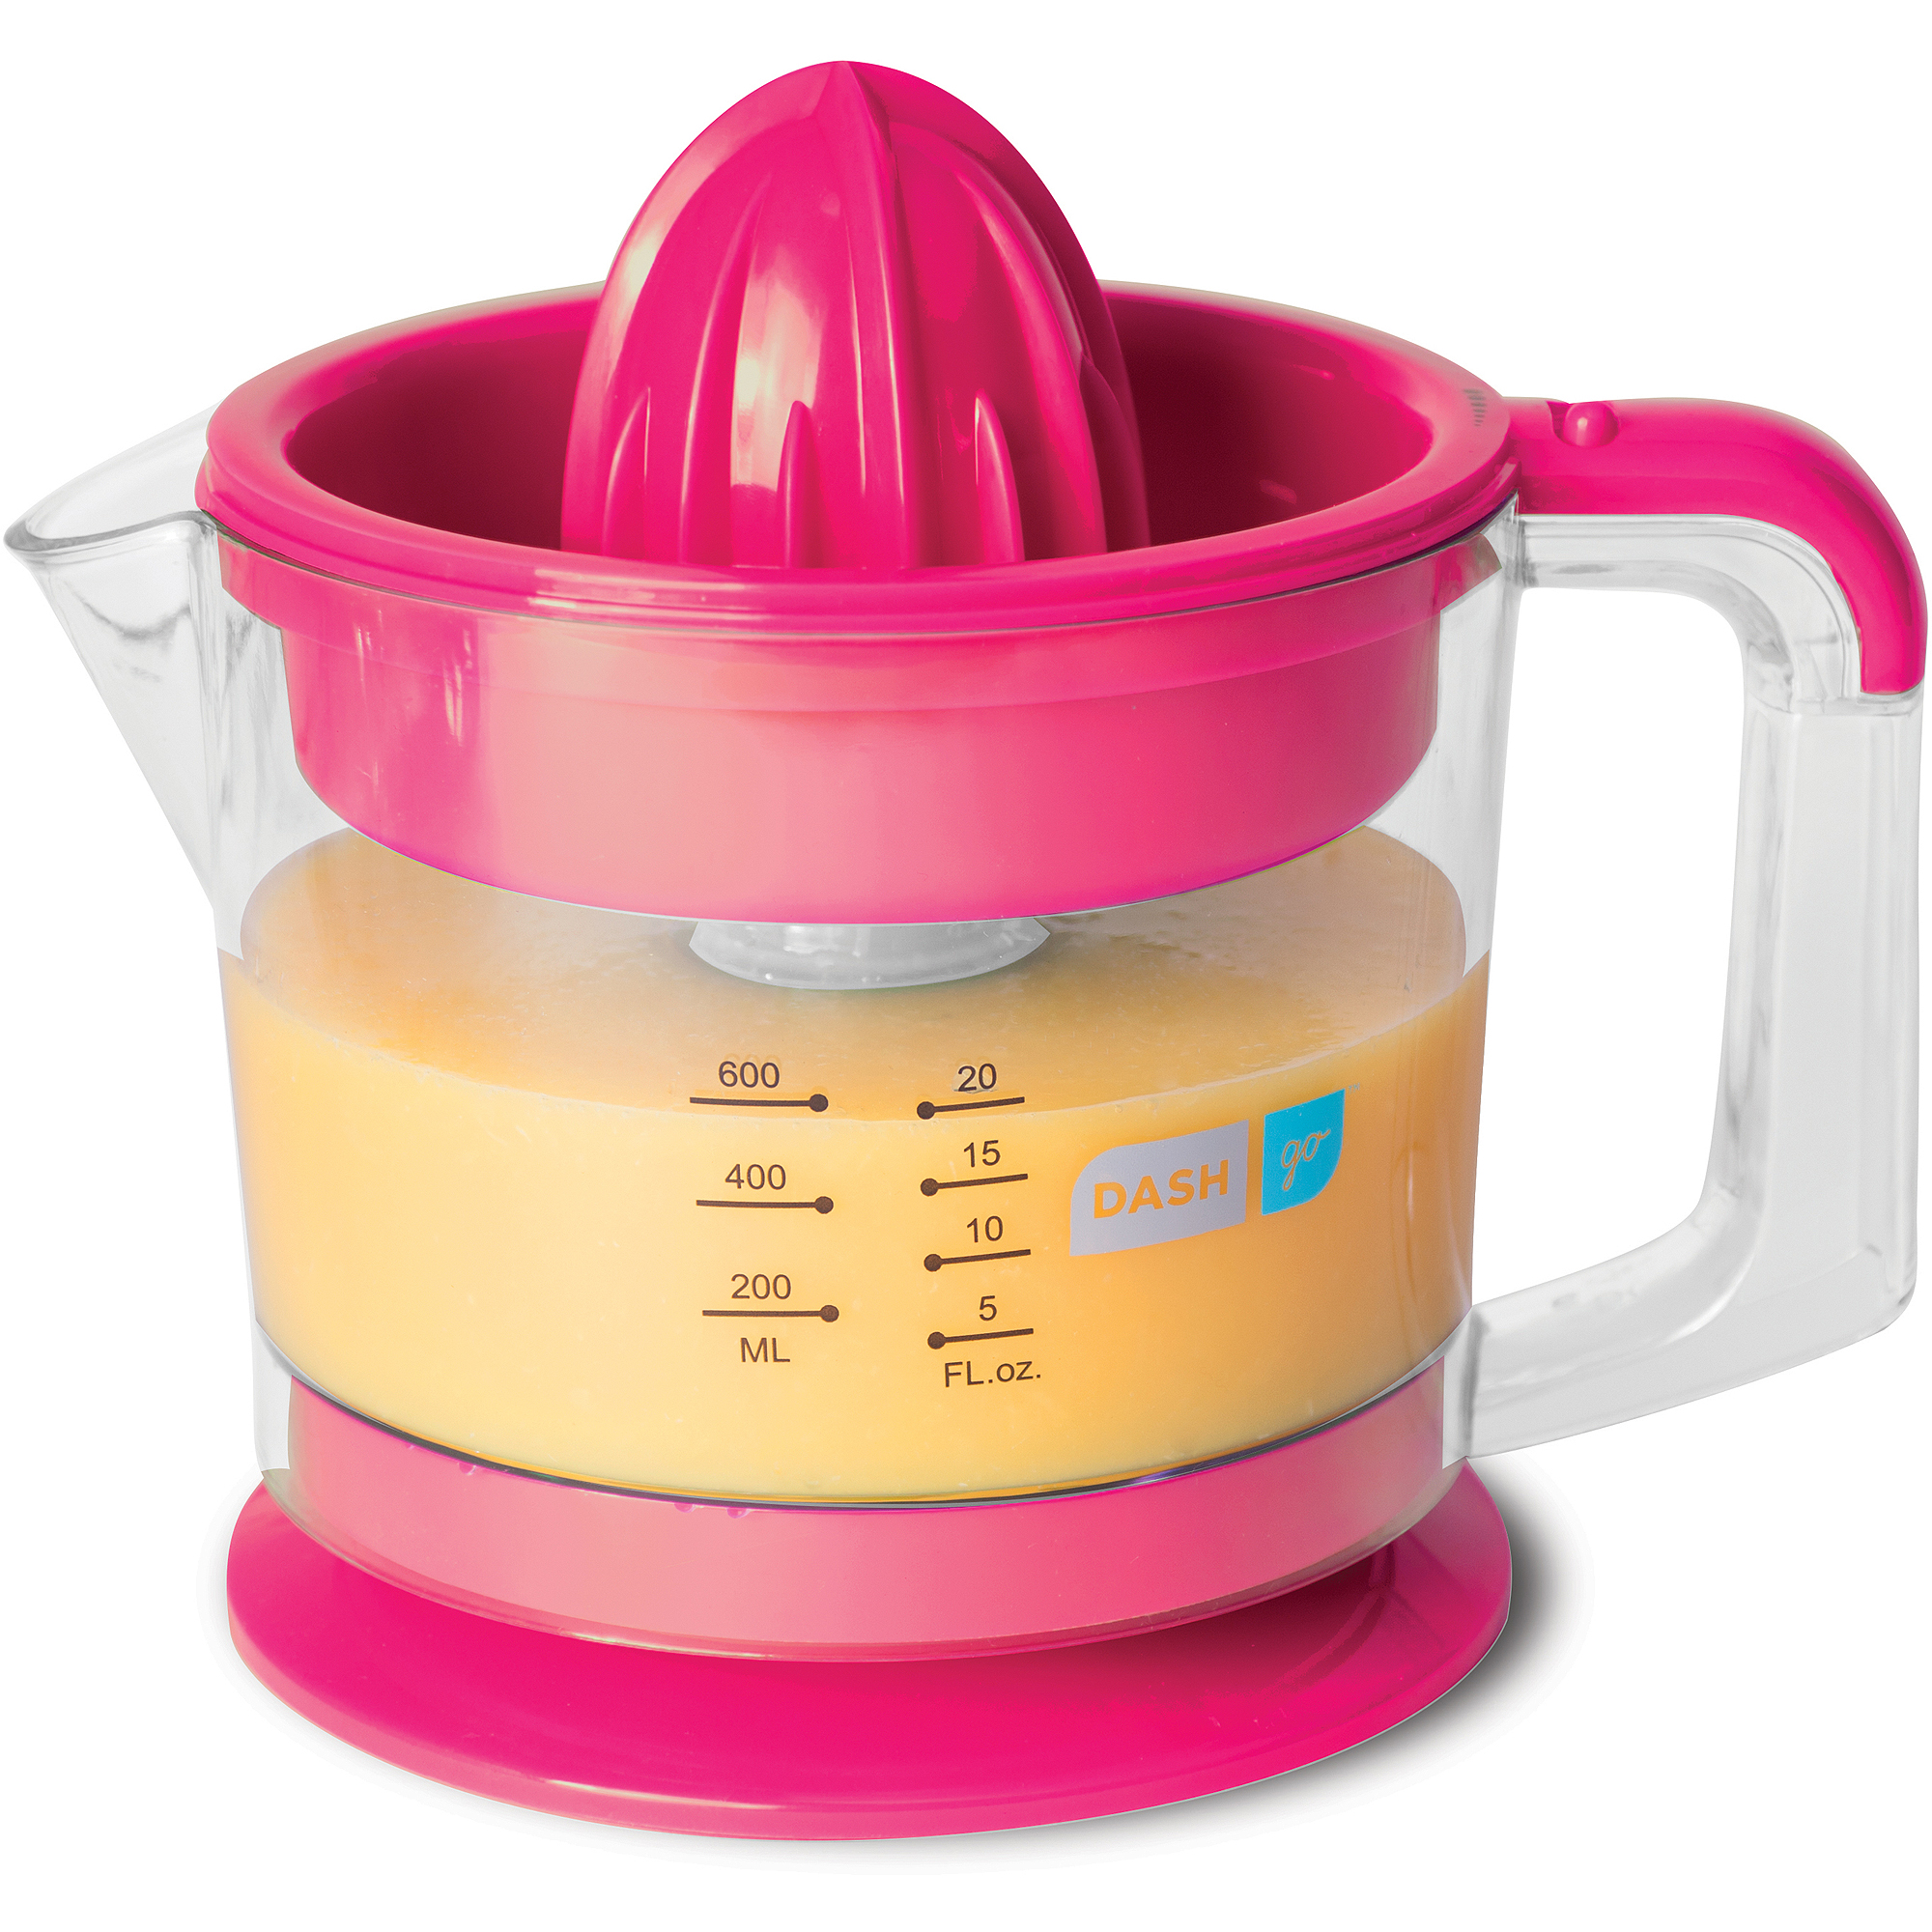 Dash Go Citrus Juicer, Pink